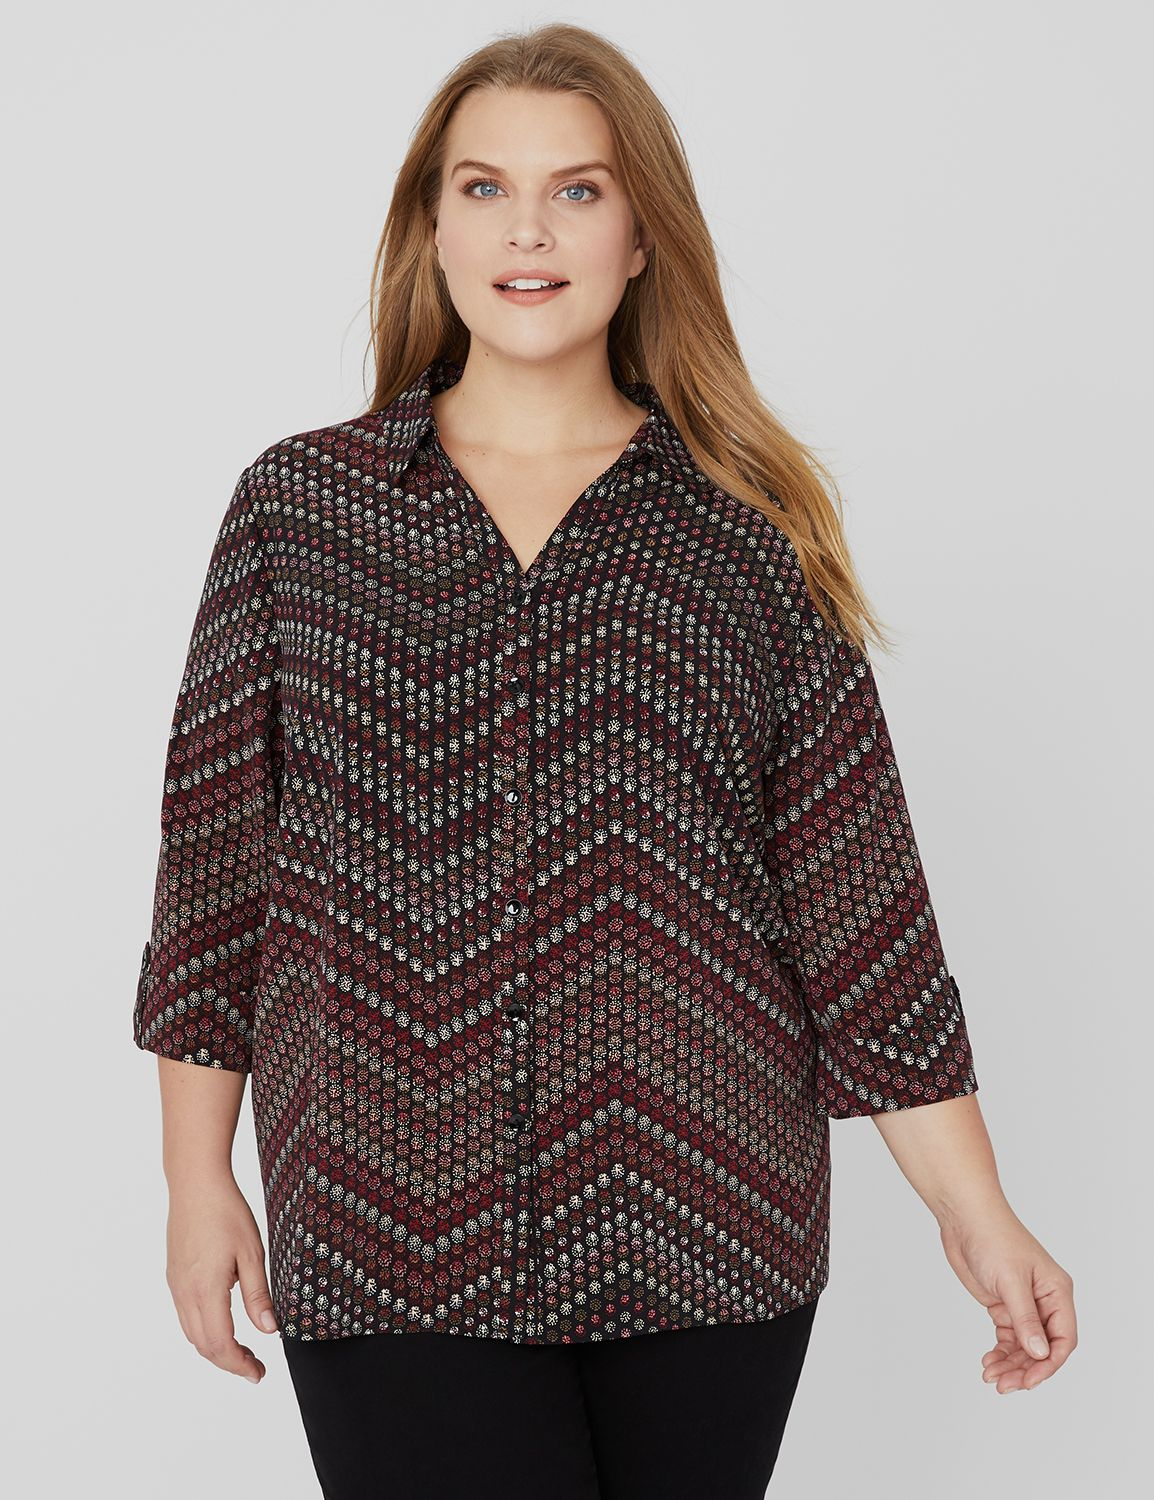 Allover Print Buttonfront 3/4 Slv Collared CDC Blouse MP-300094042